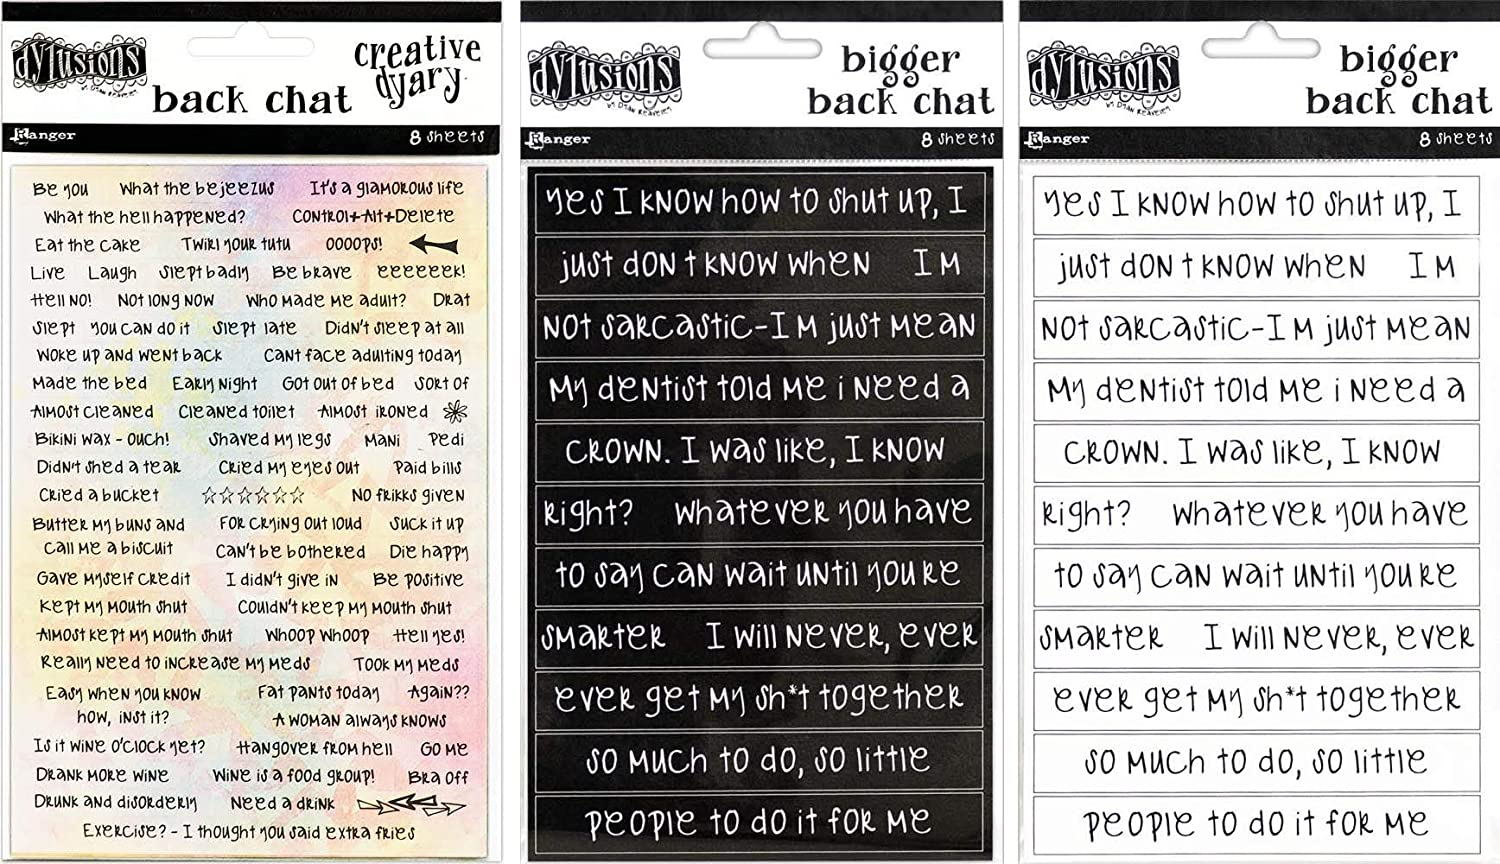 Black Bigger Back Chat and White Bigger Back Chat Dyan Reaveleys Dylusions Stickers Back Chat 3 Item Bundle Dyan Reaveley/'s Dylusions